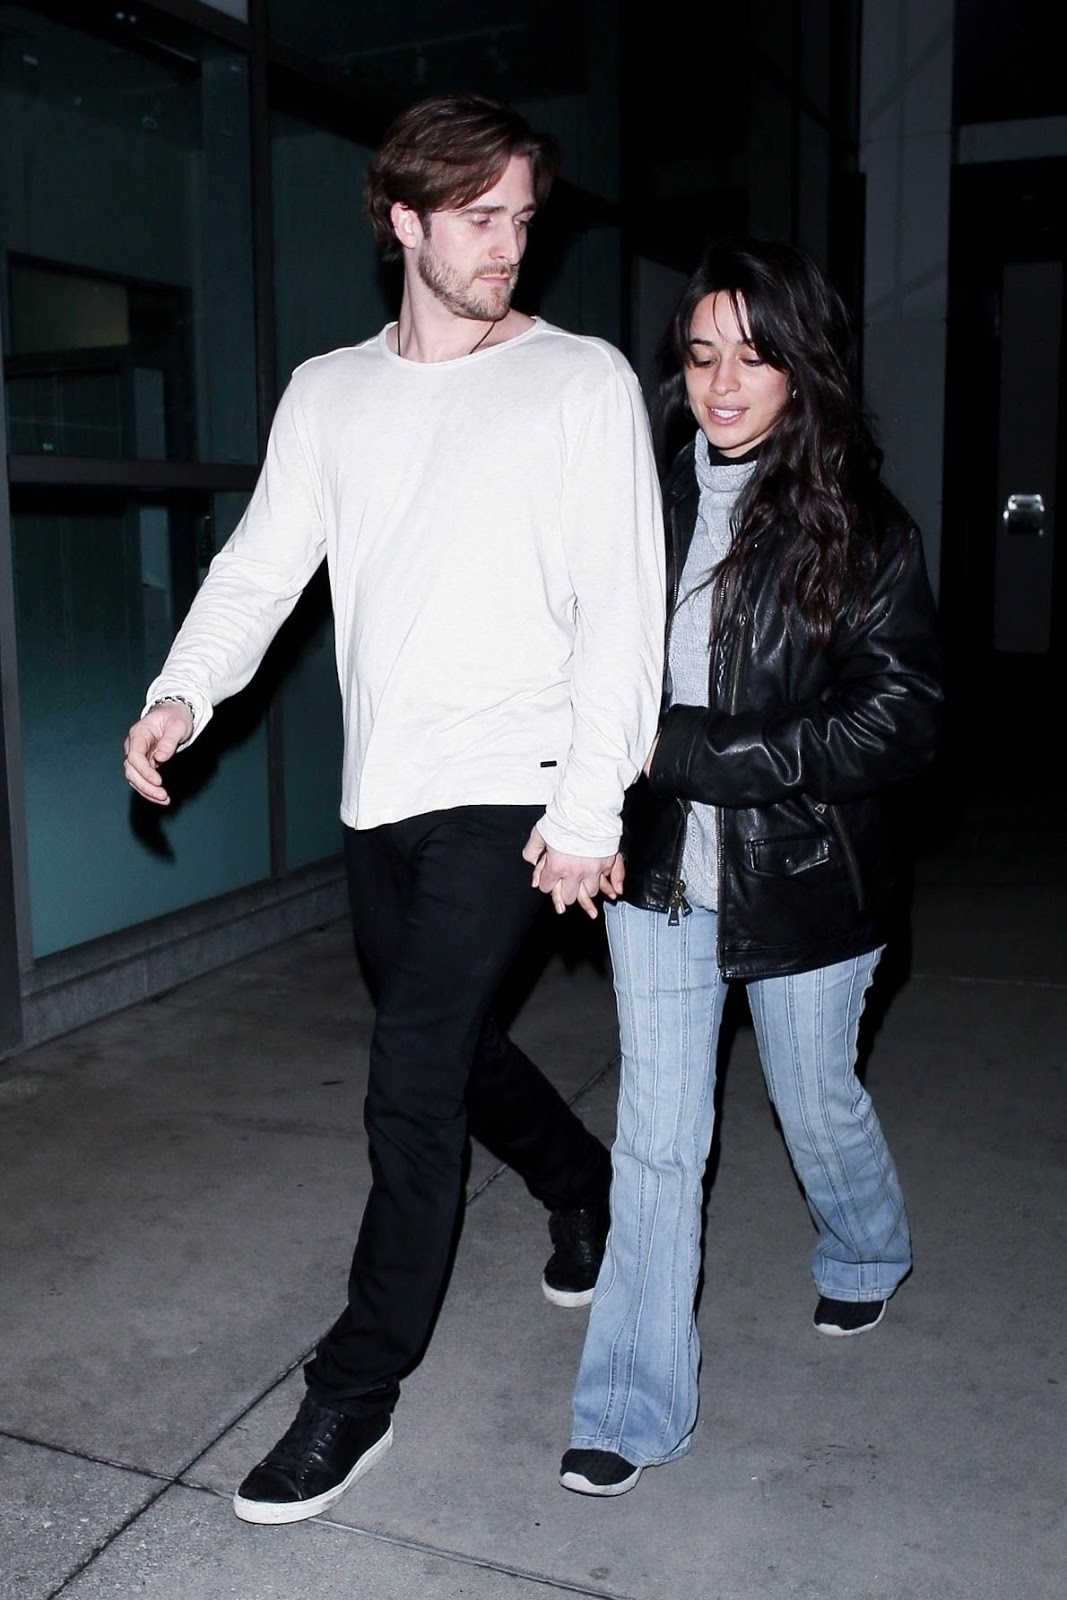 Camila Cabello - and Matthew Hussey were catching a film at ArcLight Theatre in Hollywood, CA January 31, 2019